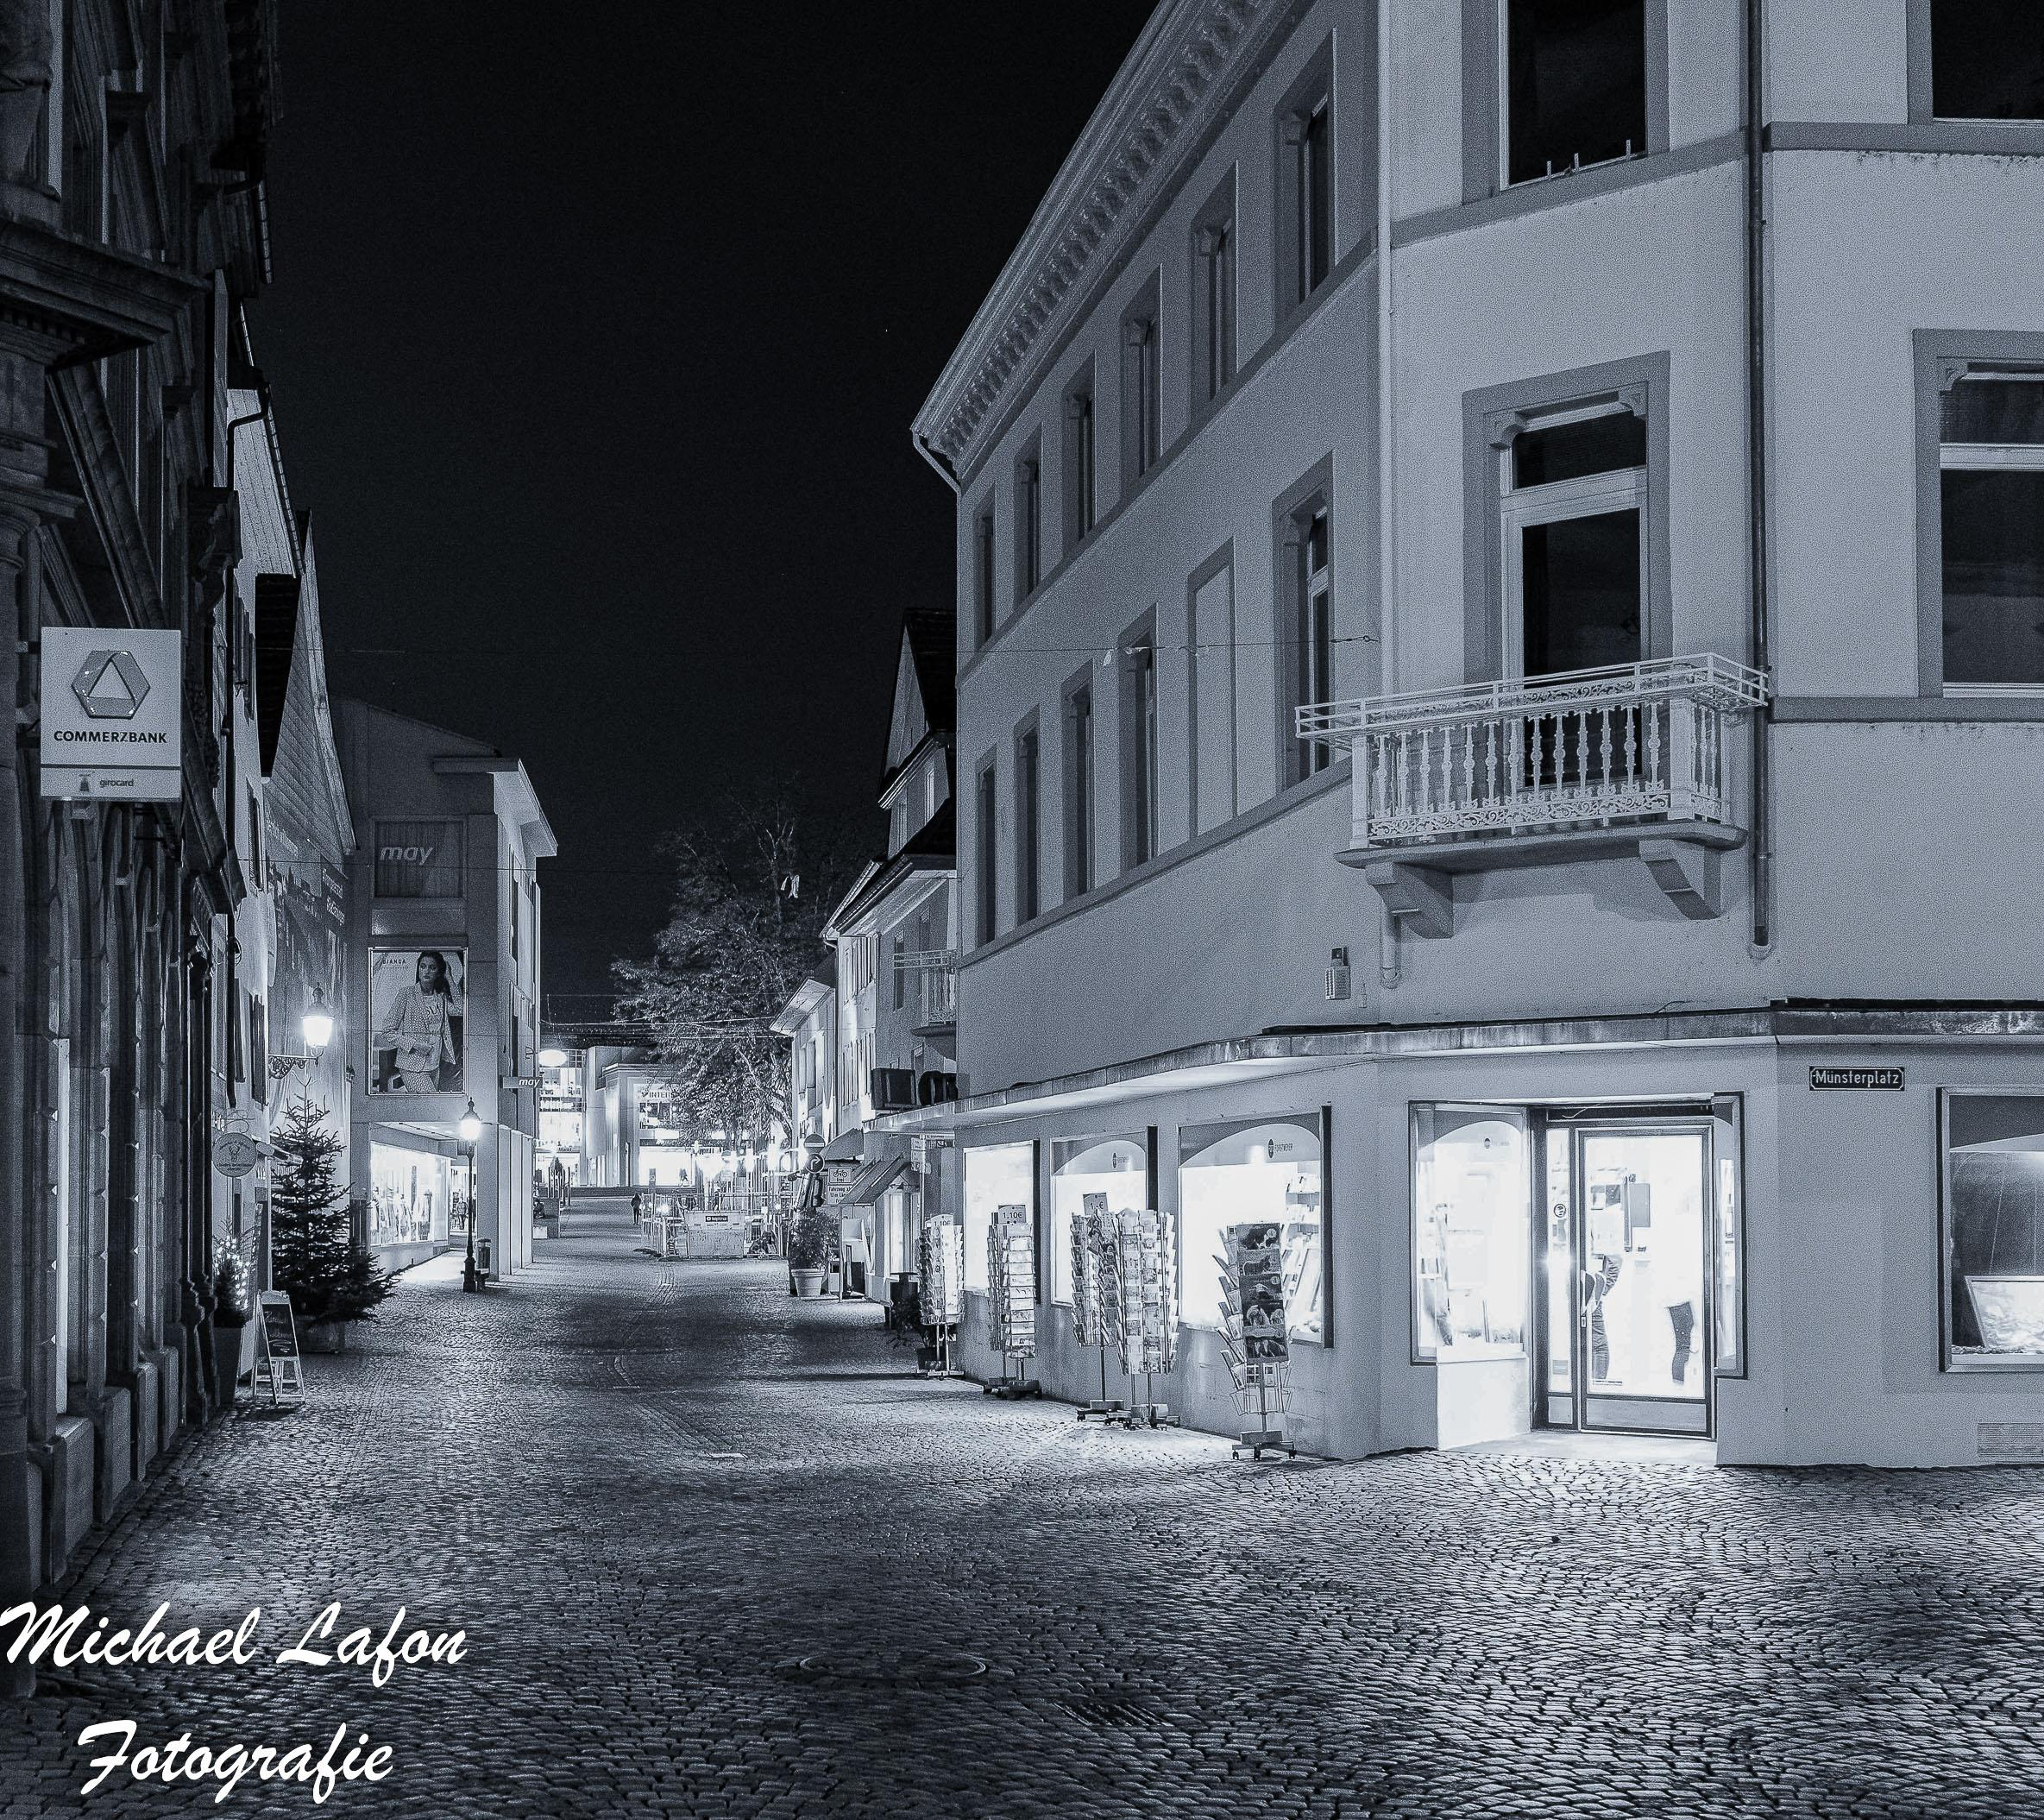 Michael Lafon Fotografie | Bad Säckingen | Bad Säckingen Bild 11